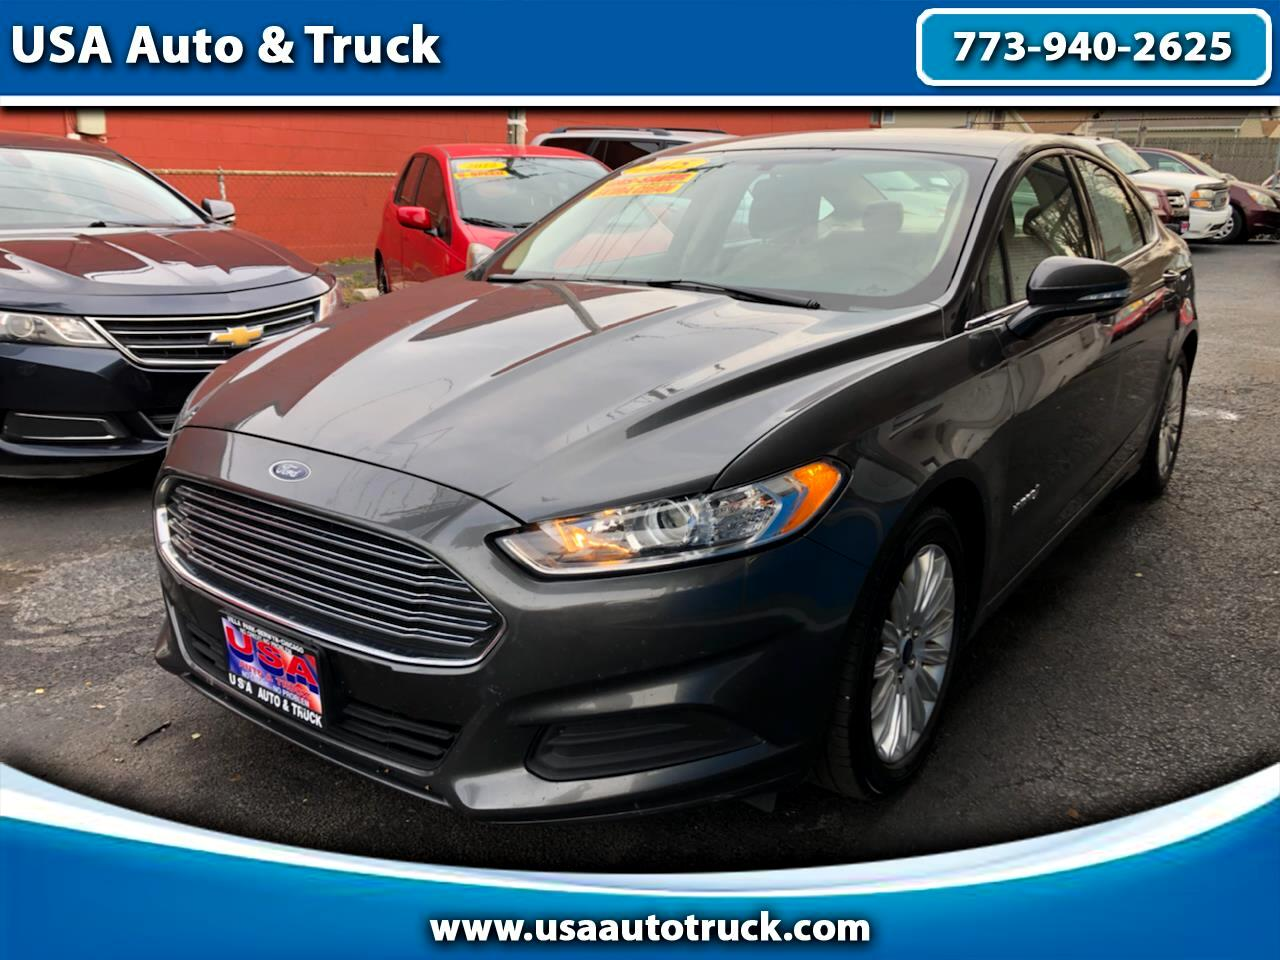 Ford Fusion 4dr Sdn SE Hybrid FWD 2015